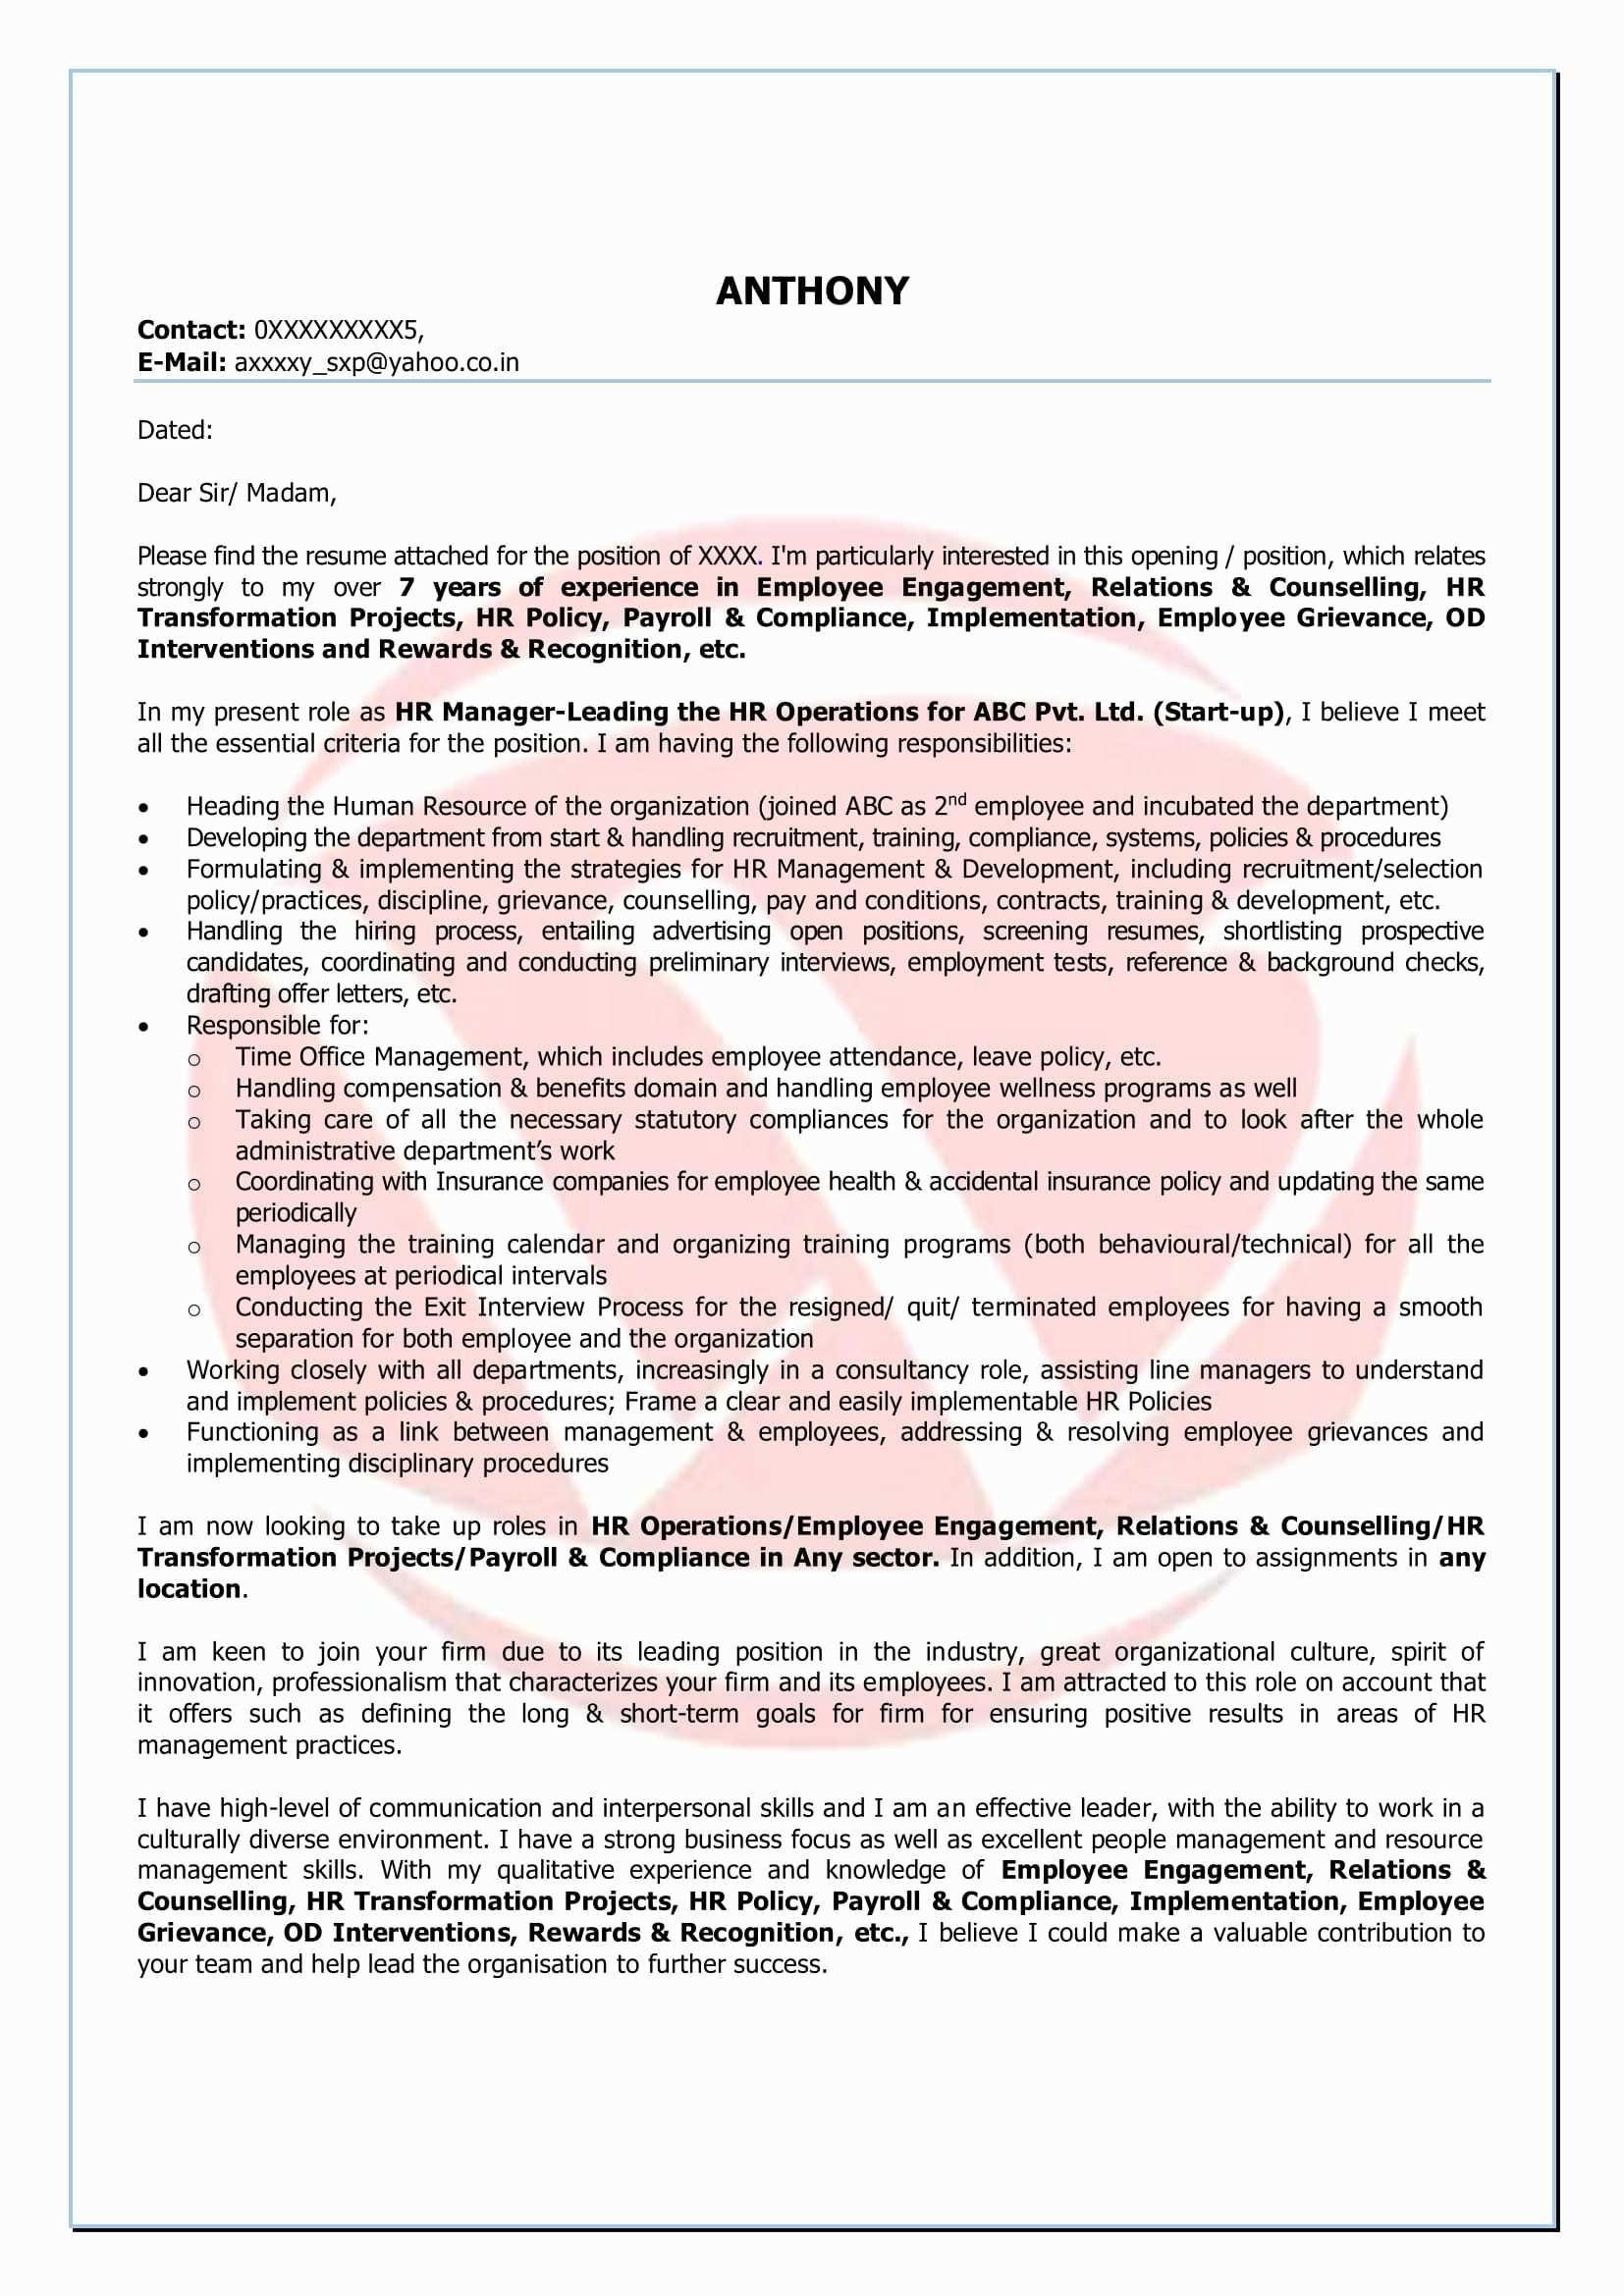 Career Builder Cover Letter Template - Careerbuilder Free Resume Template Luxury Management Cover Letter